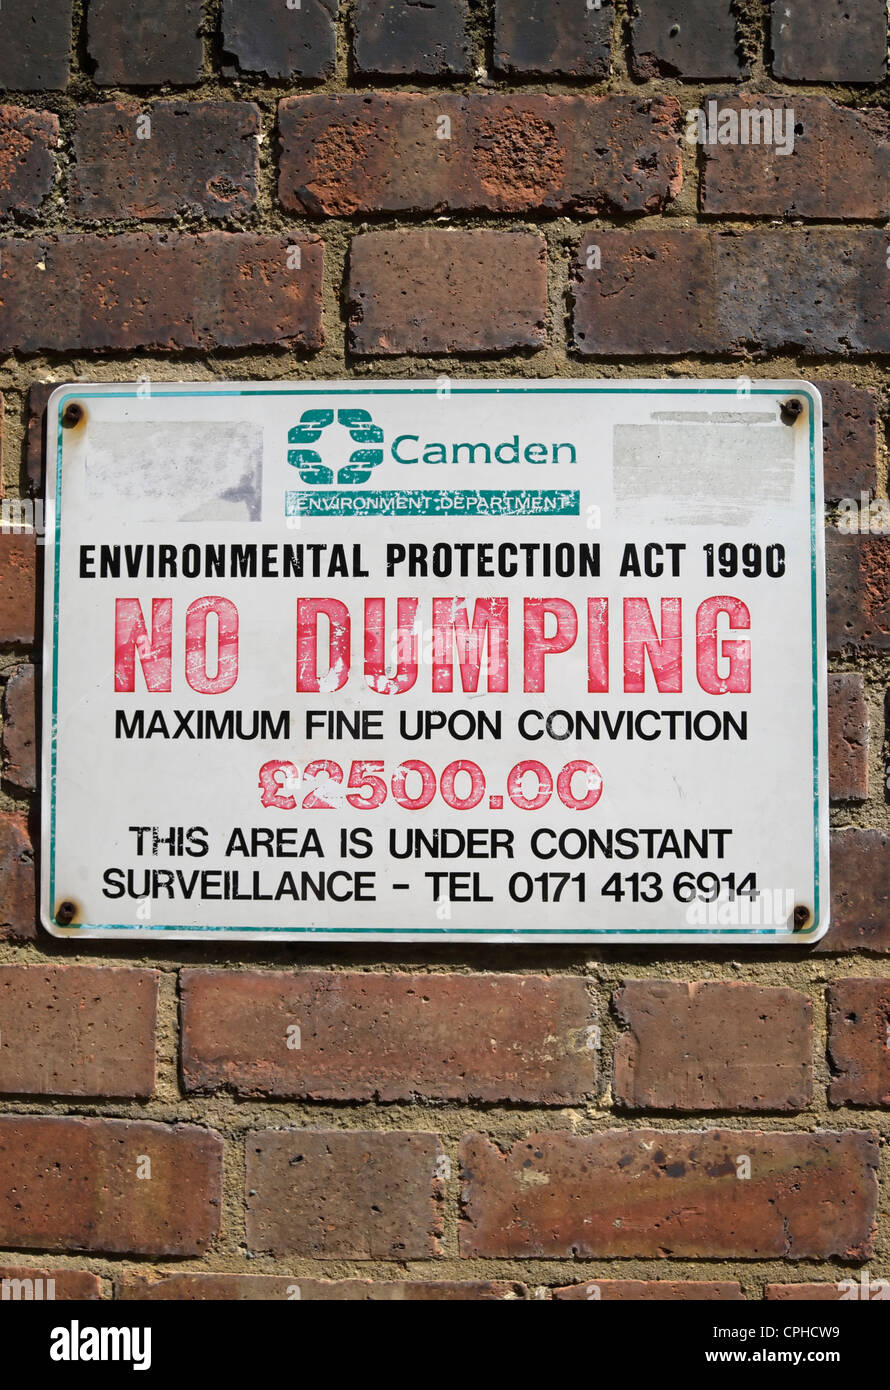 camden council no dumping sign in camden, london, england, warning of fine up to £2500 - Stock Image